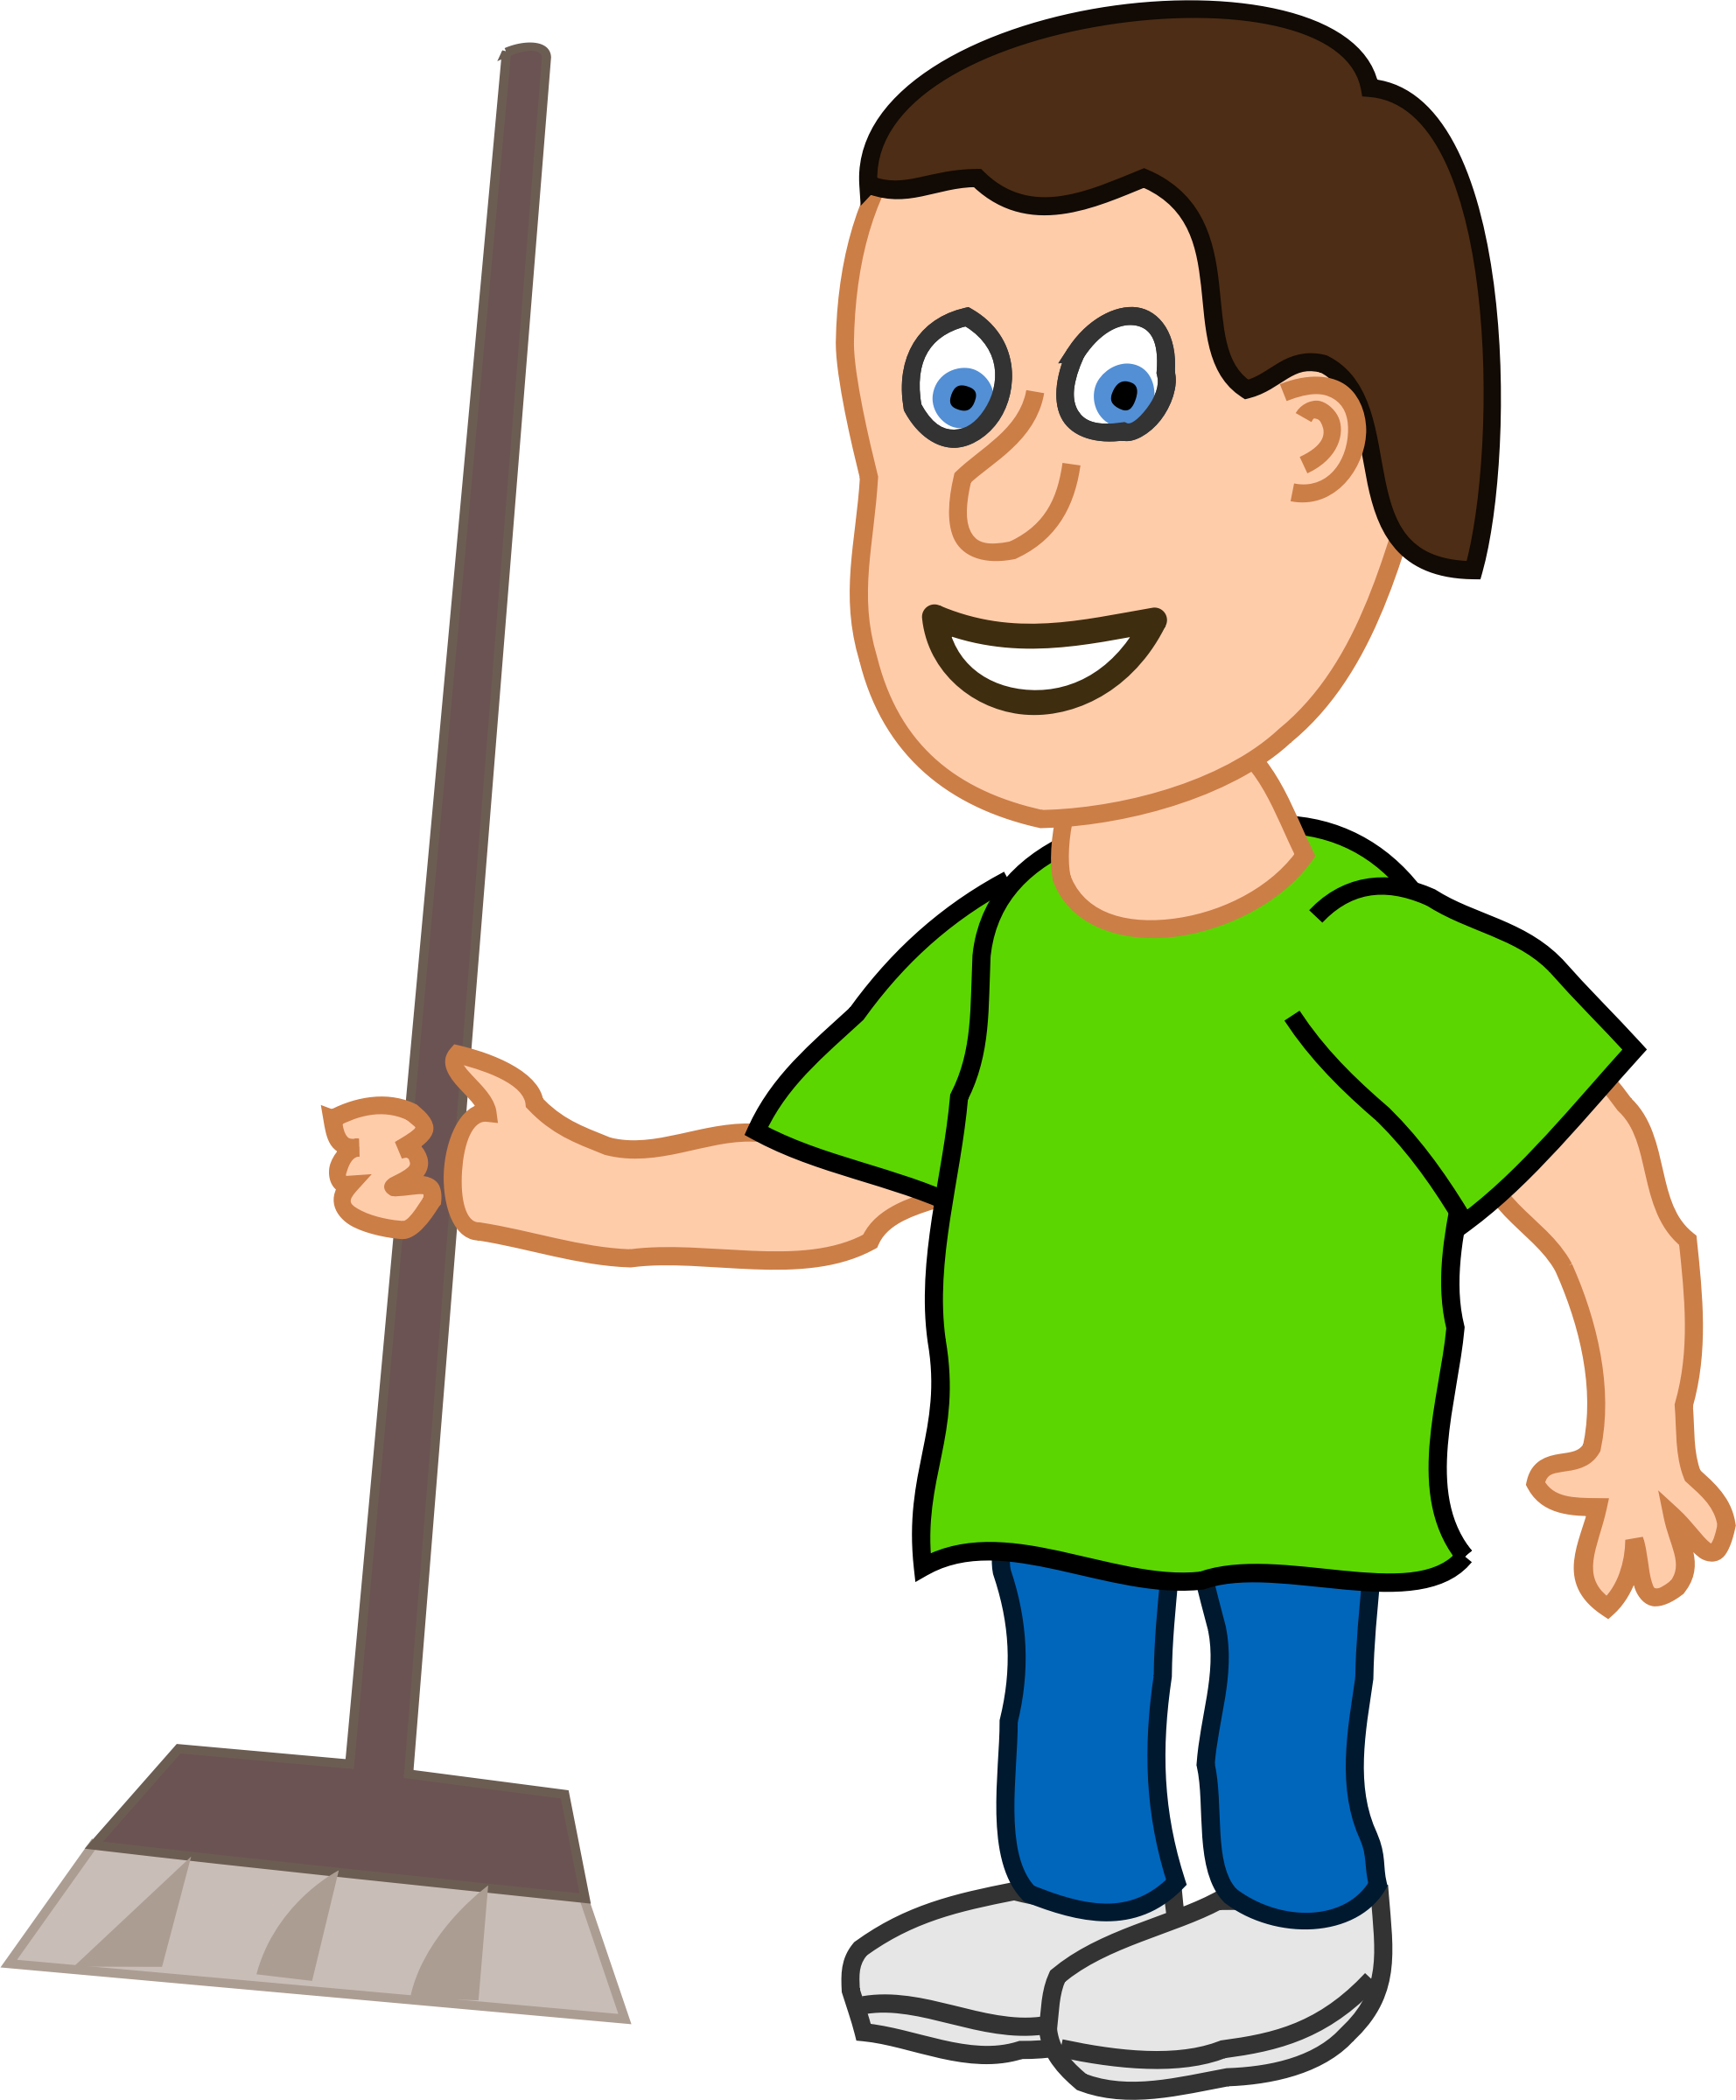 young housekeeper boy with broomstick by qubodup